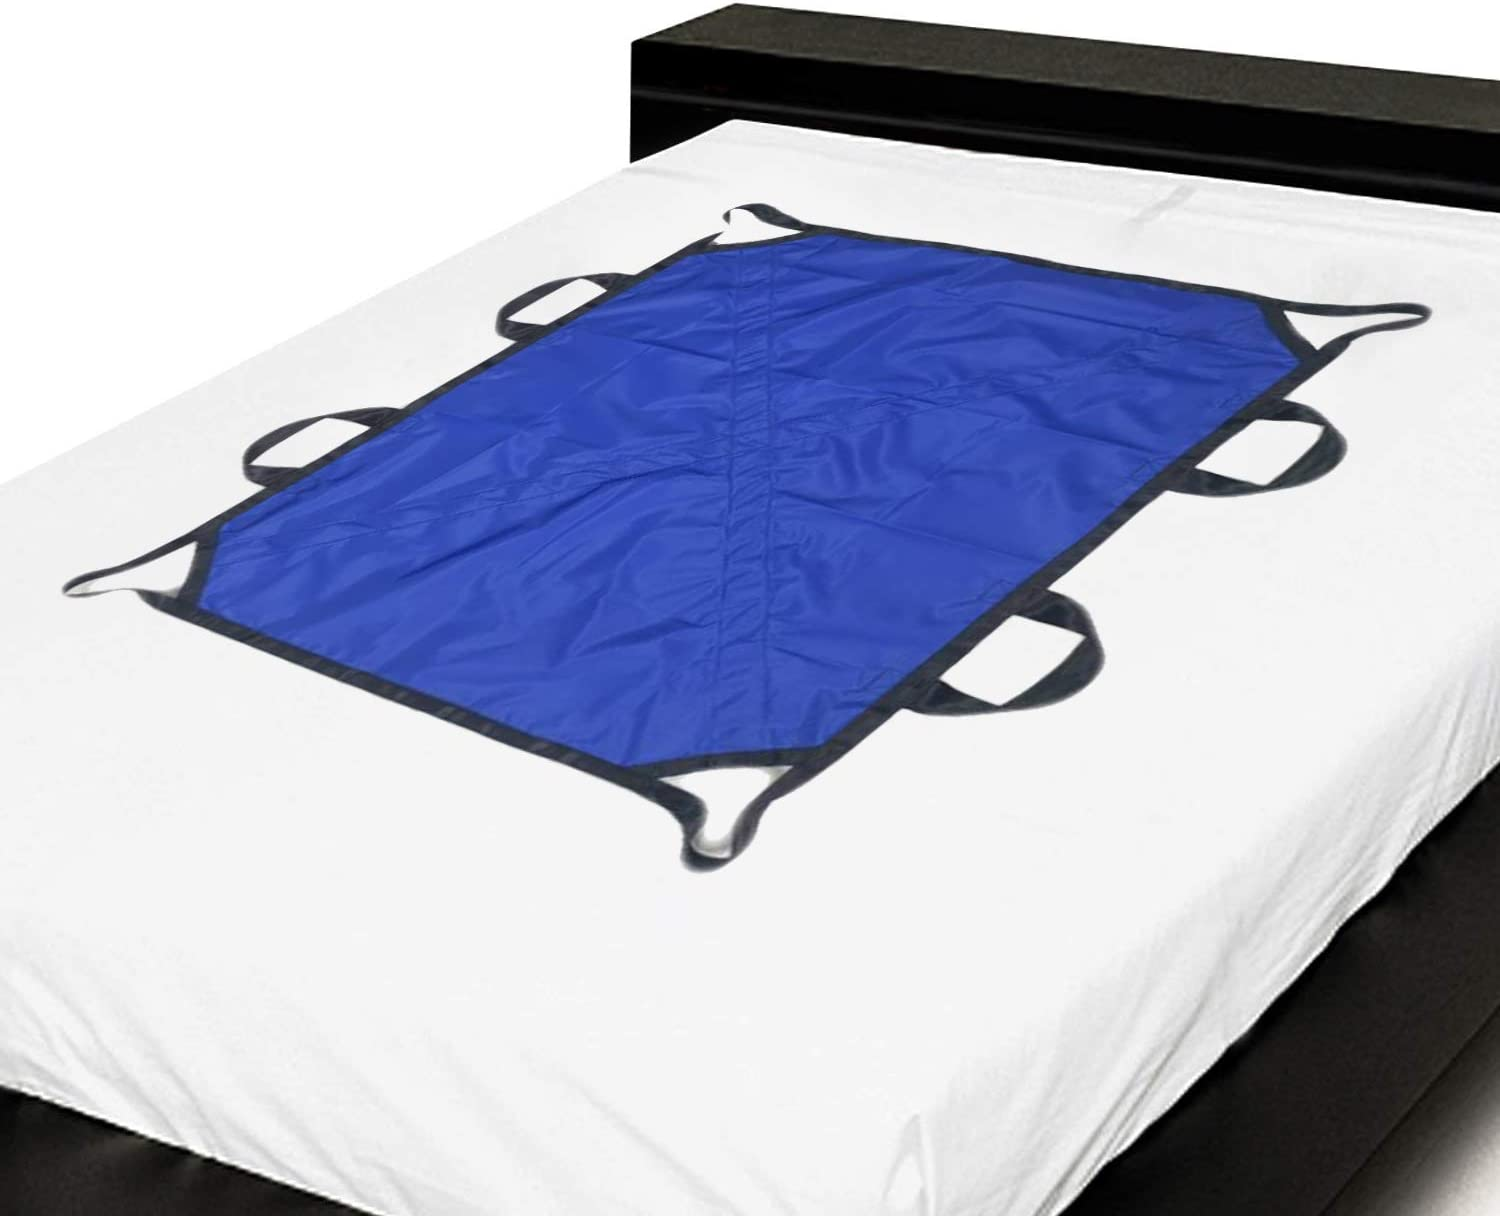 Positioning Under blast sales Bed Large special price !! Pad Patient Repositioning Slide Sheet Draw with